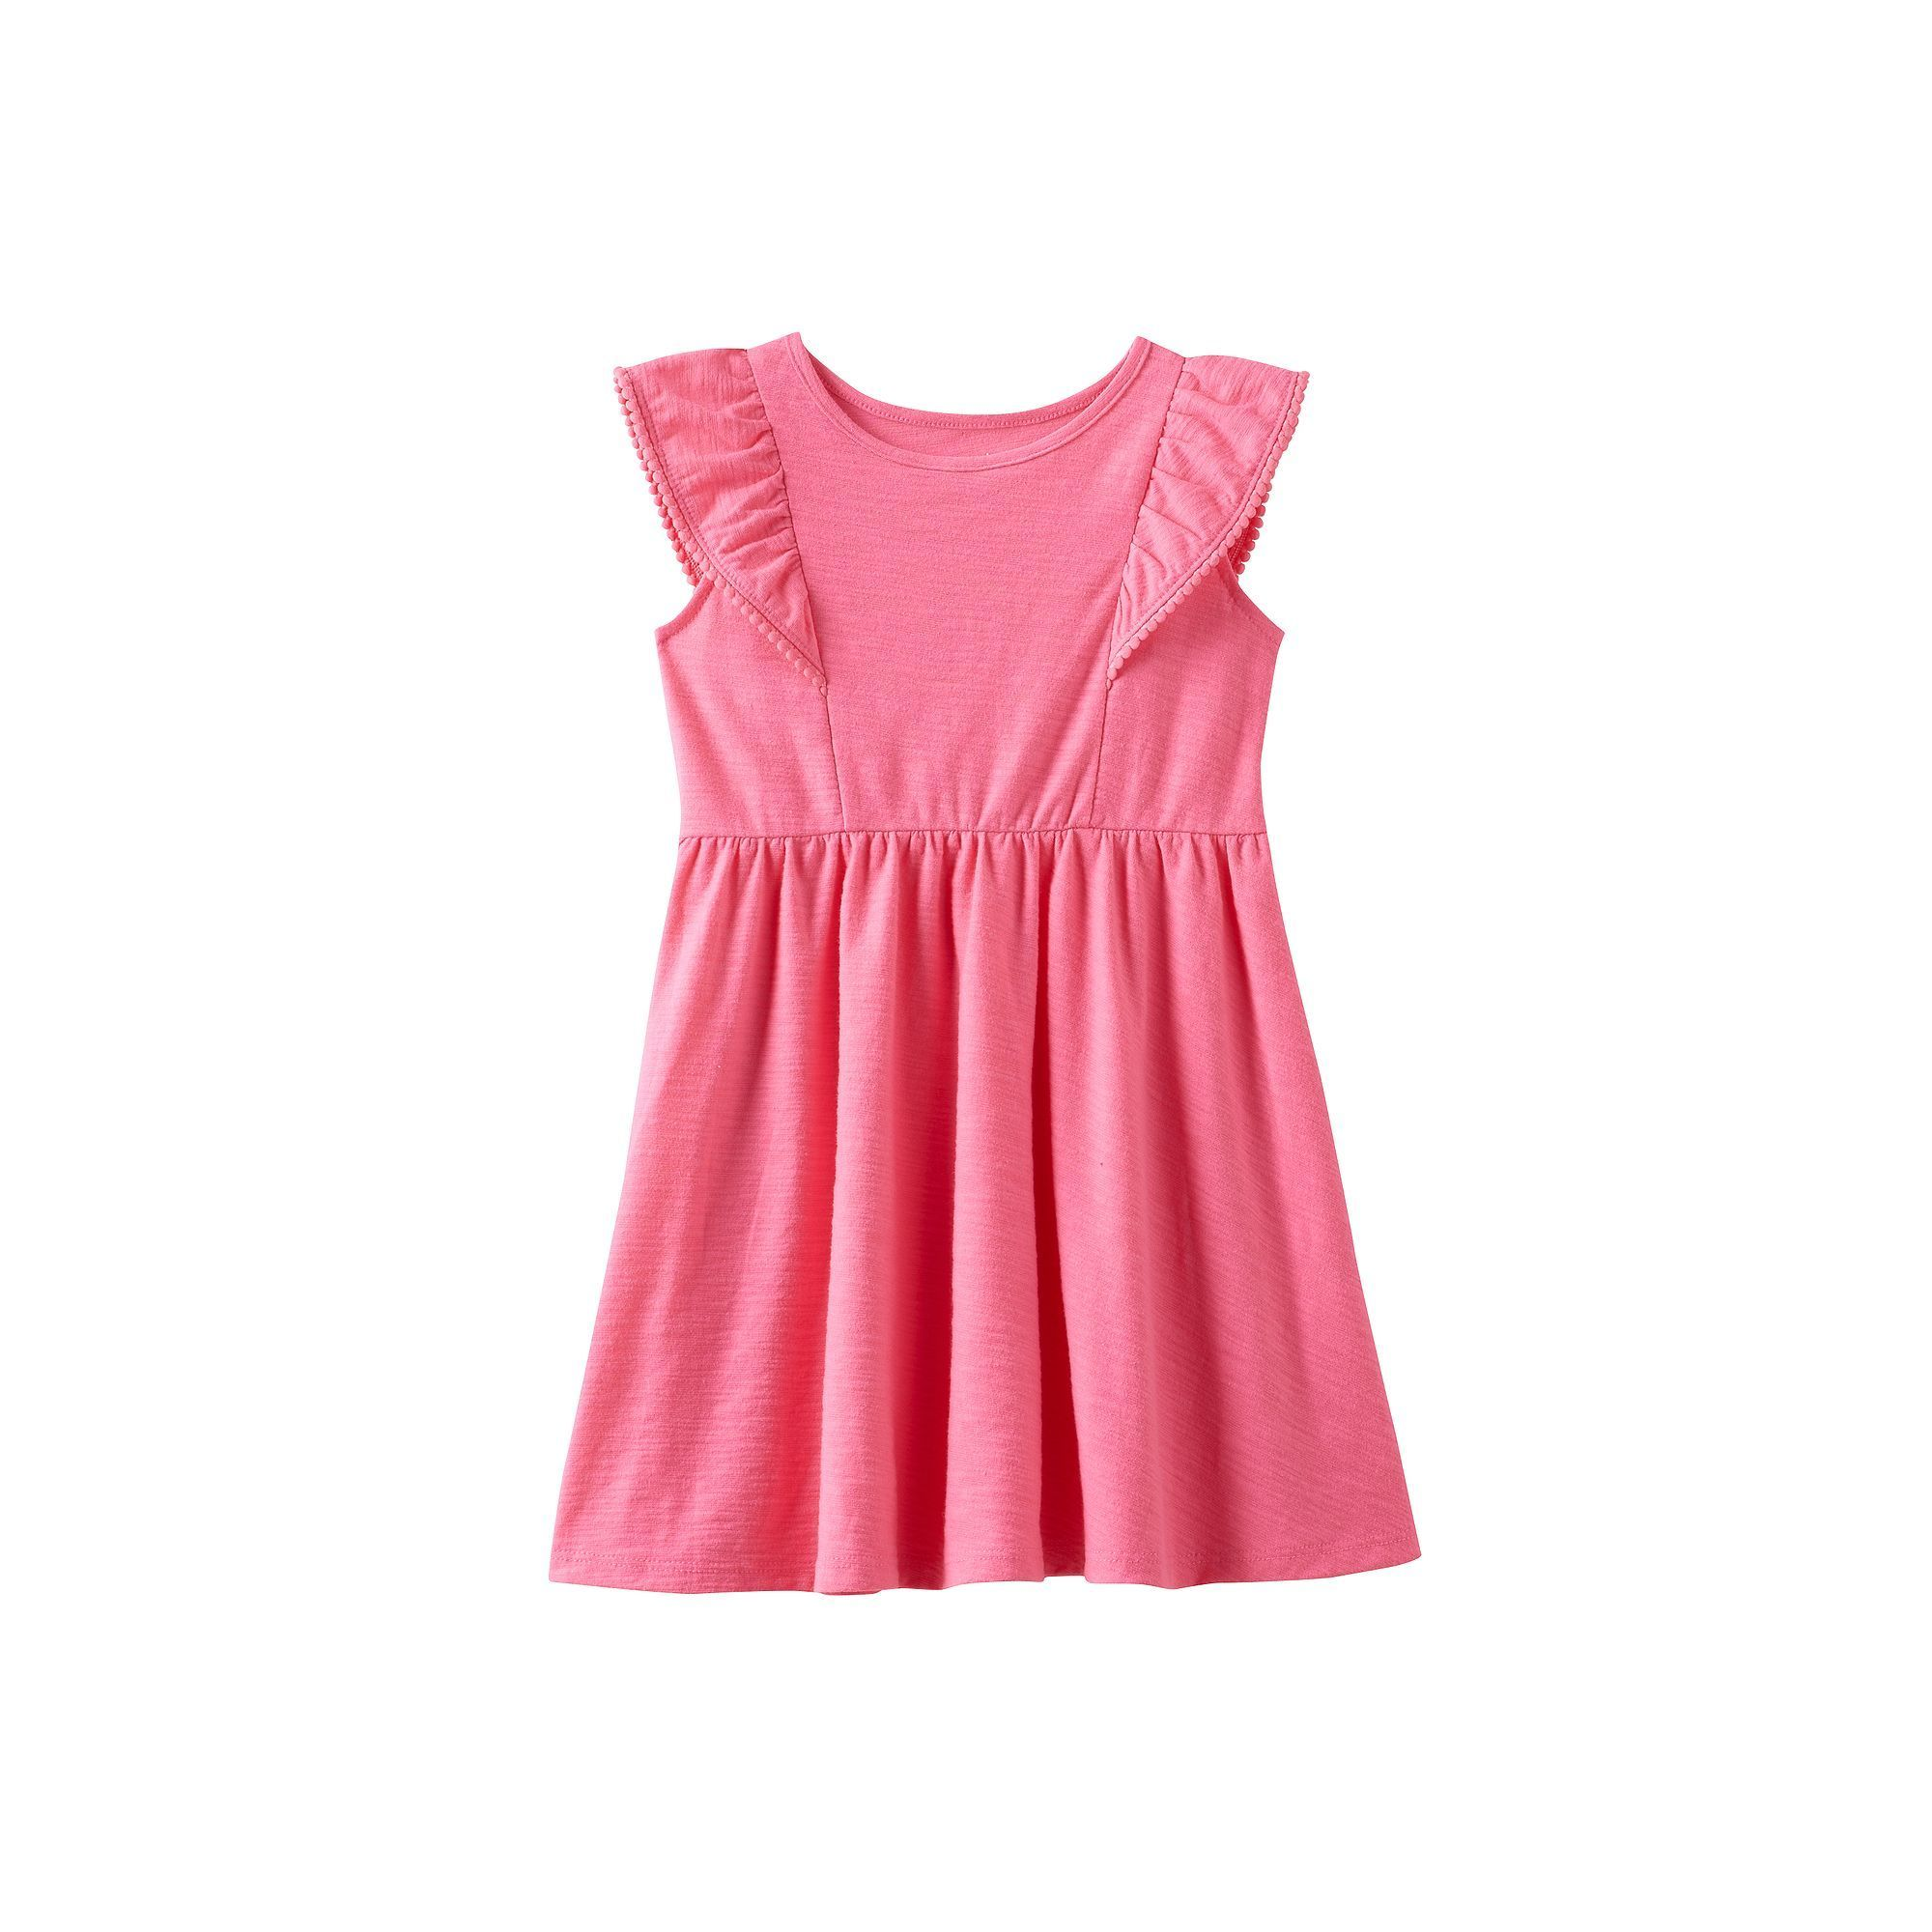 Toddler Girl Jumping Beans® Pom-Pom Trim Flutter Short Sleeve Solid Slubbed Dress, Size: 2T, Med Pink